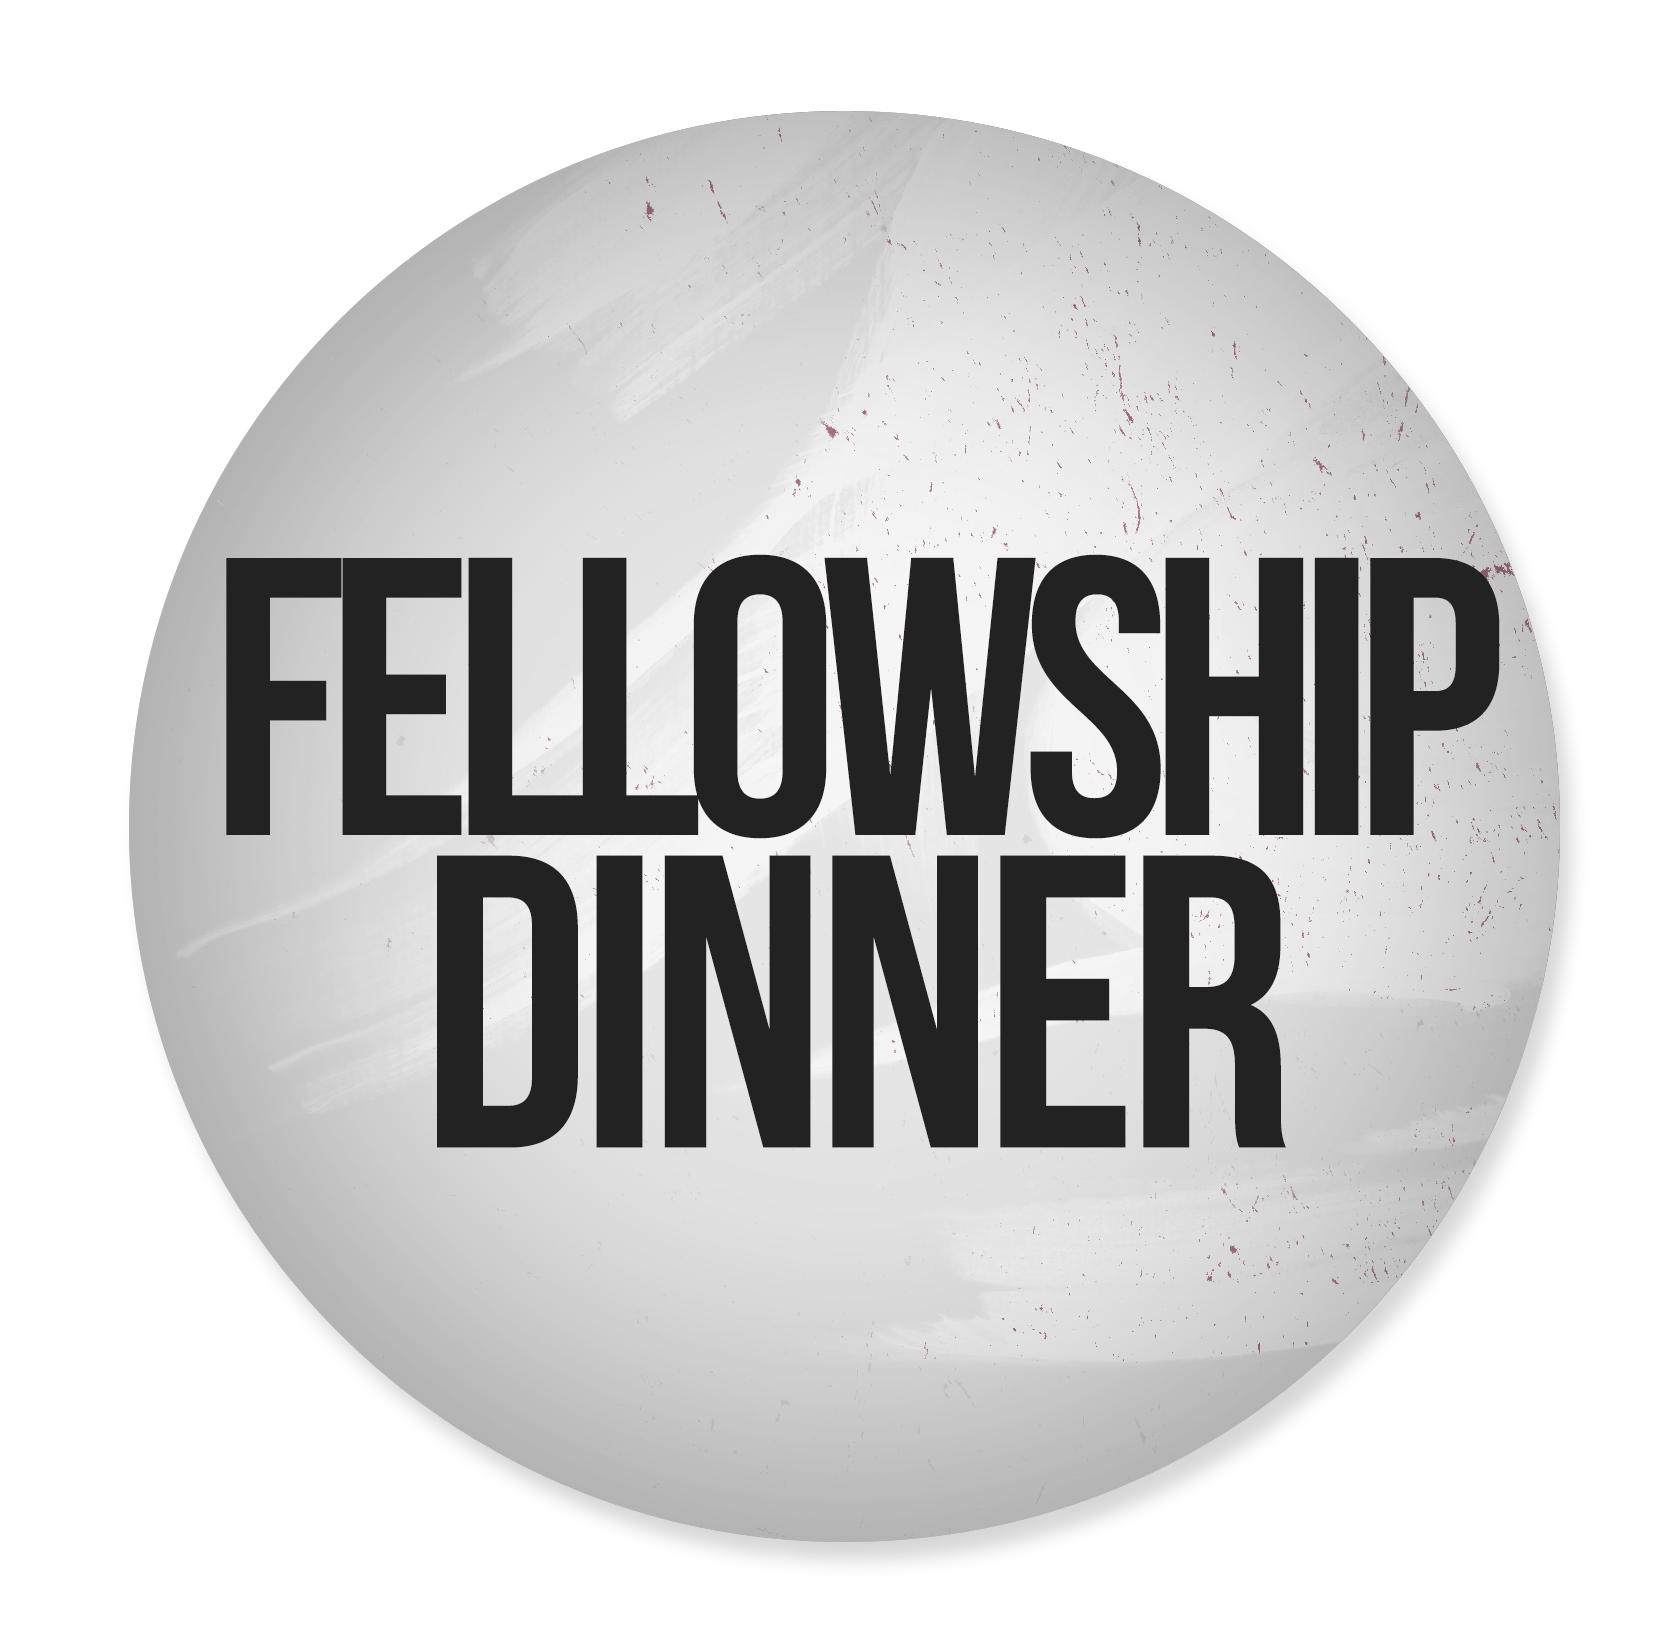 Fellowship Dinner Fellowshipdinner